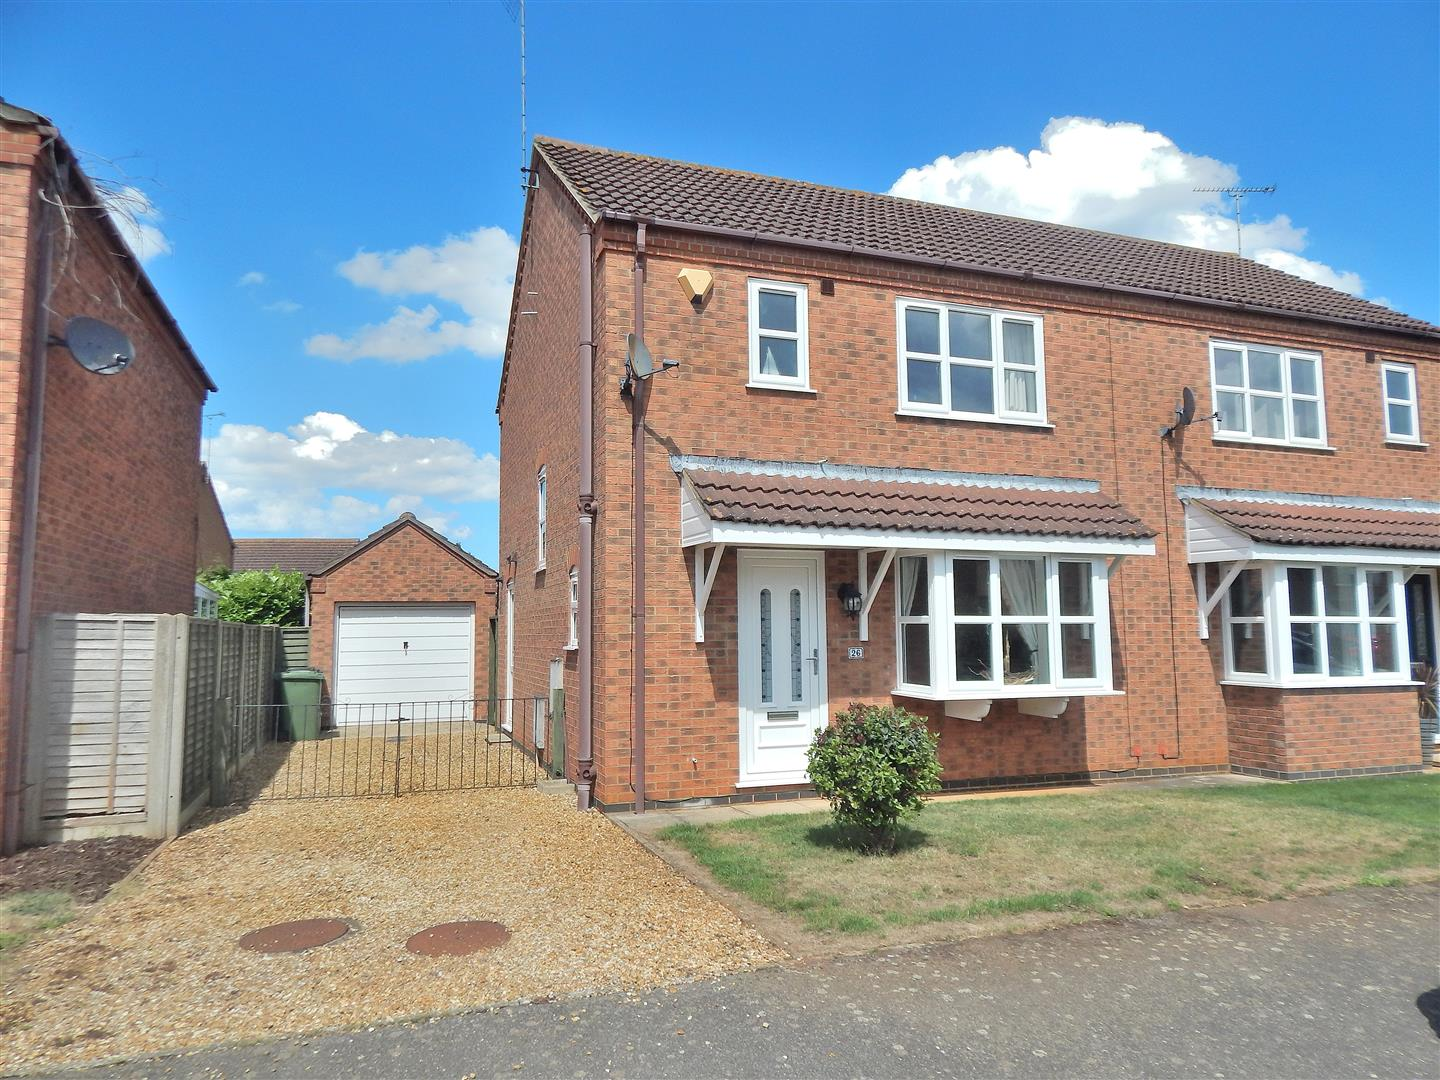 3 bed semi-detached house for sale in King's Lynn, PE31 6UT - Property Image 1